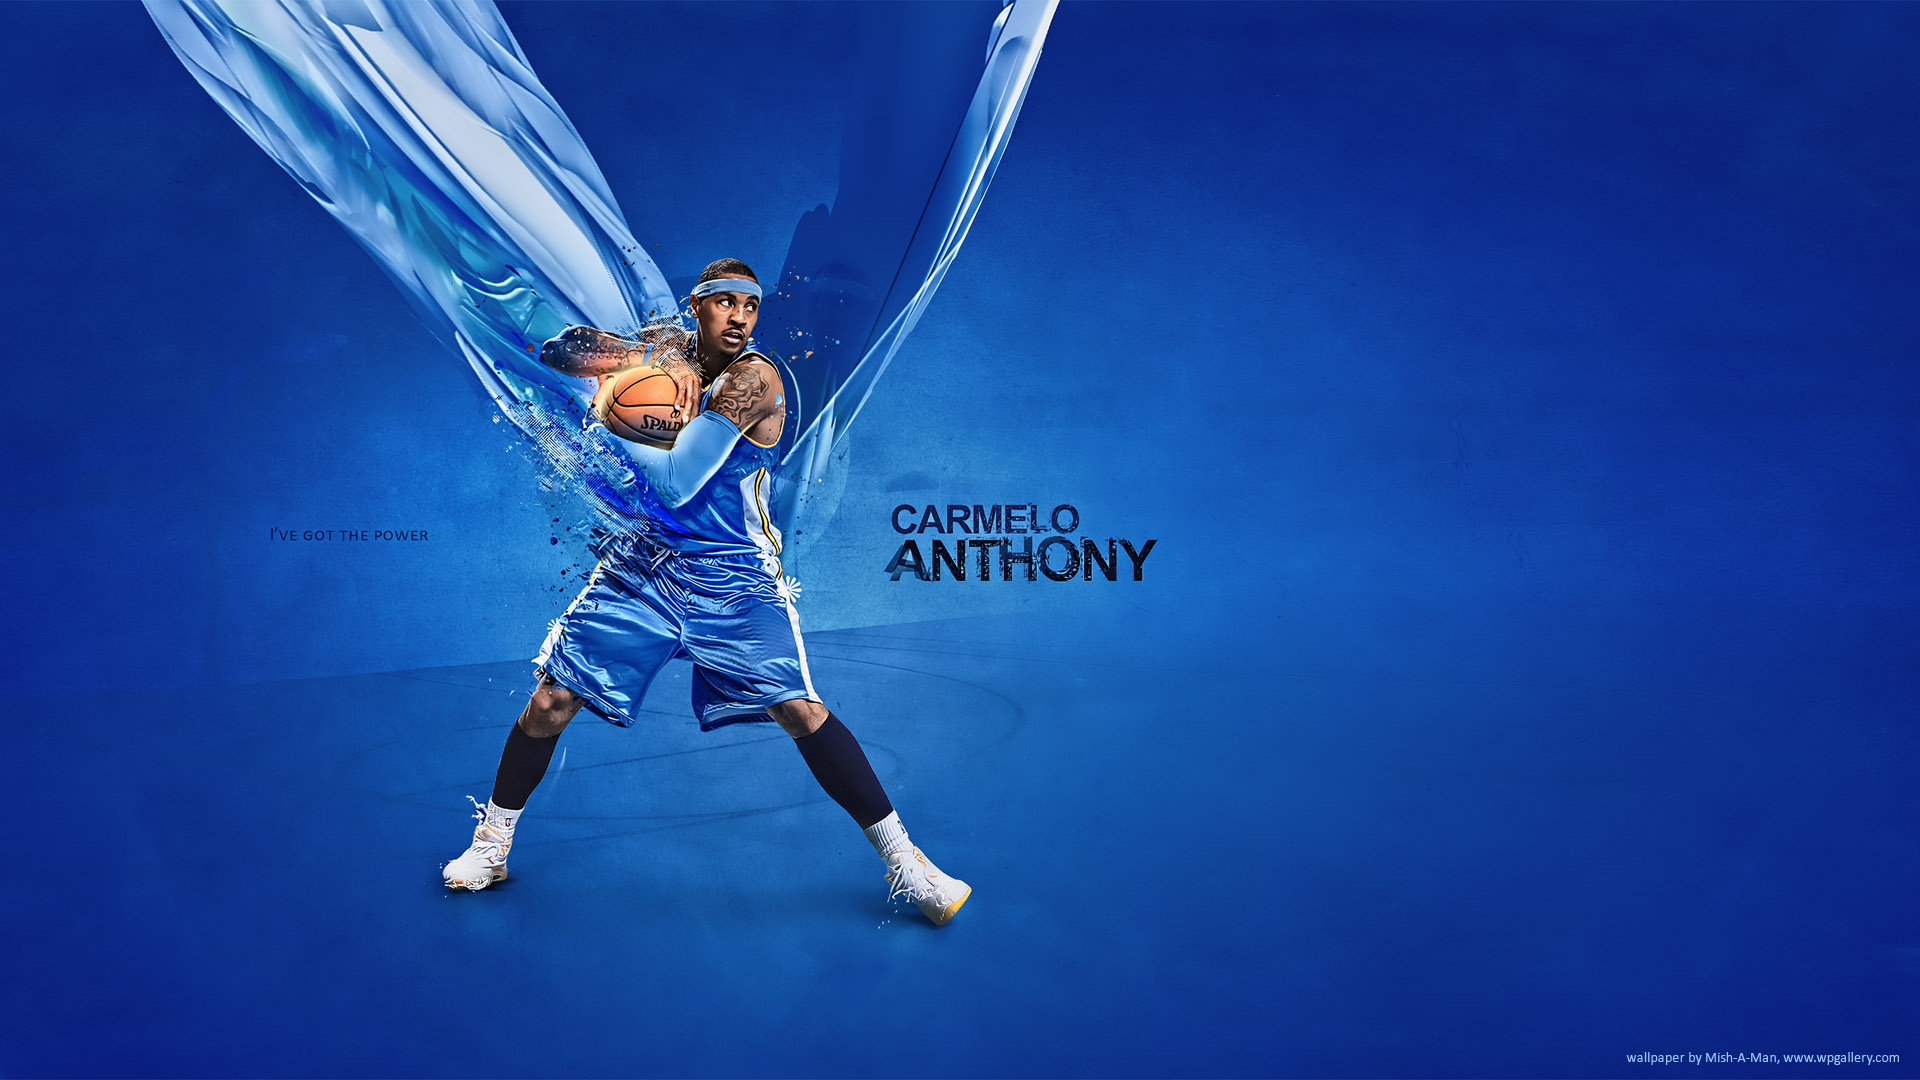 Carmelo Anthony by Mish-A-Man